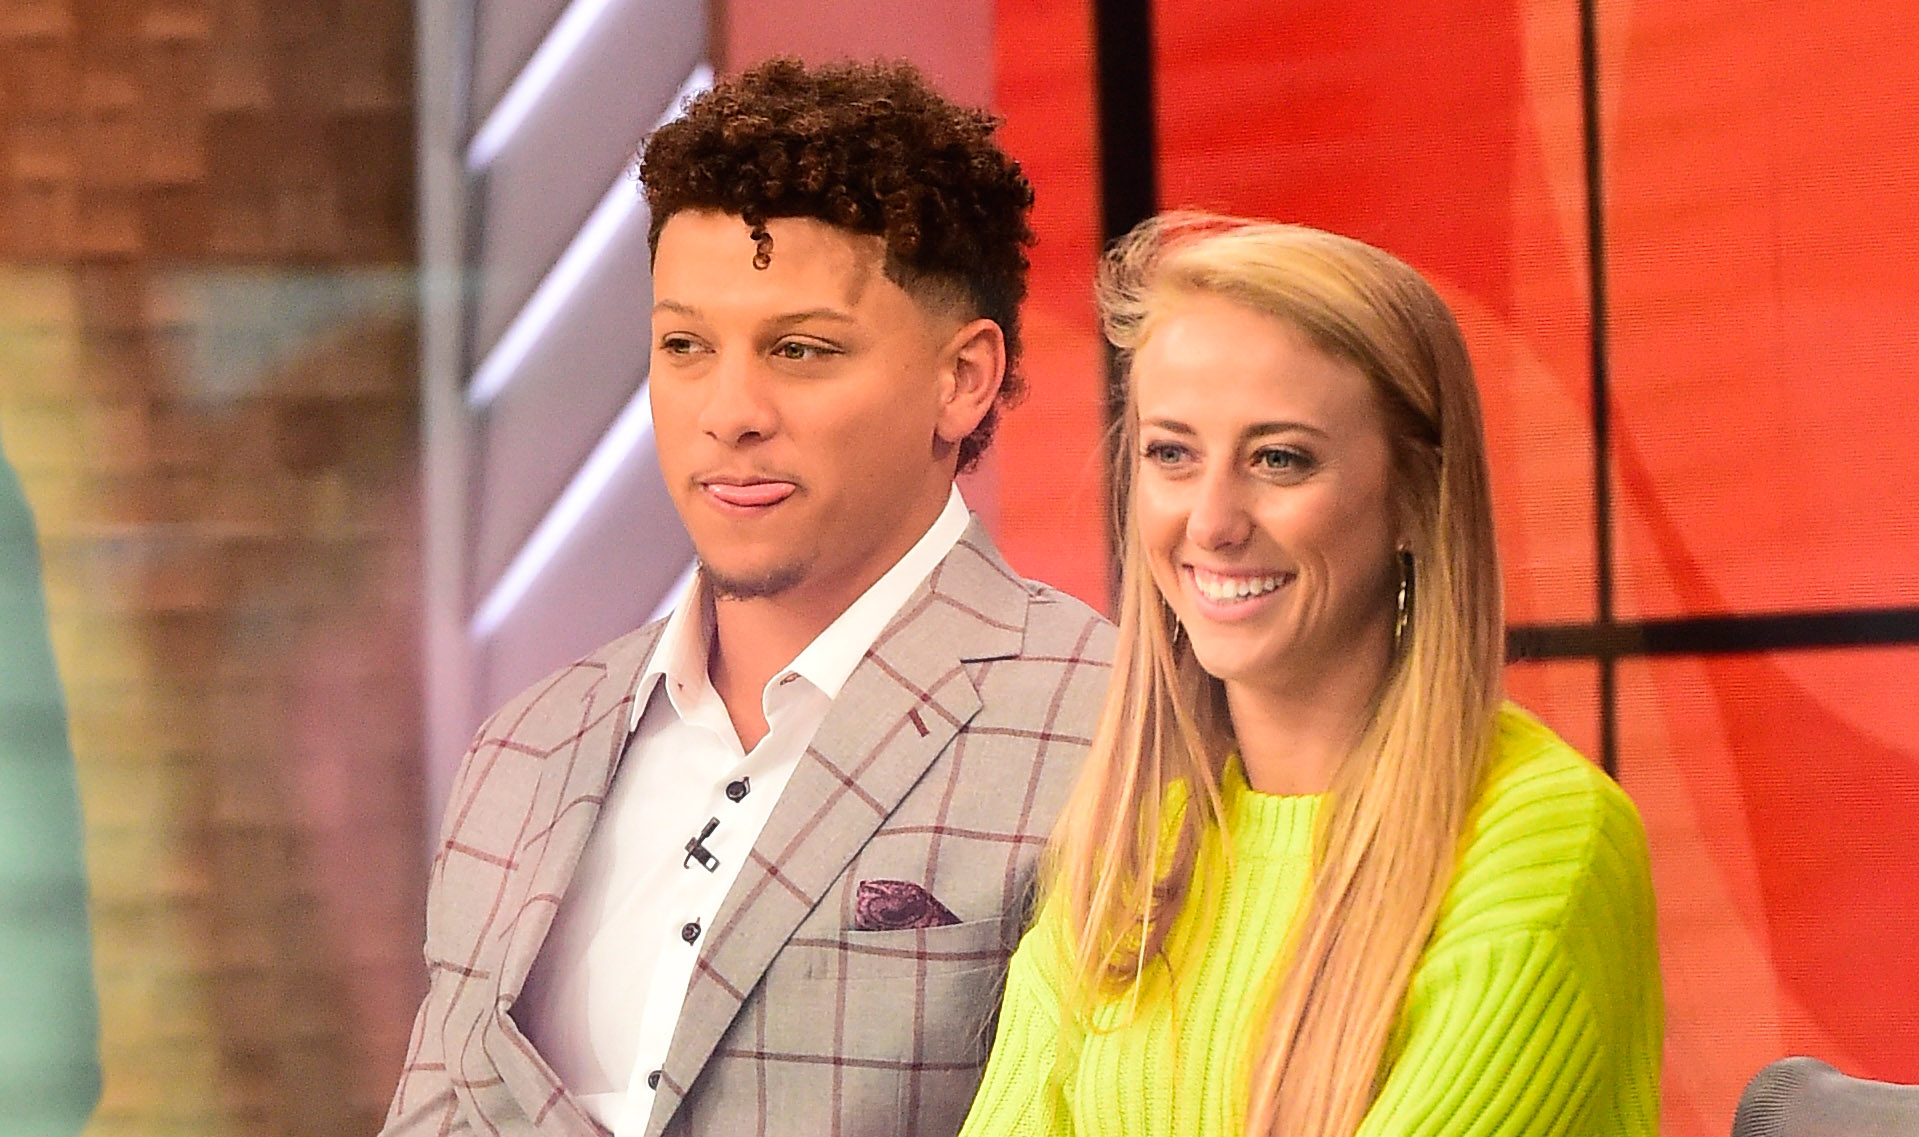 Patrick Mahomes Fiancé Brittany Matthews Fires Back At 'Hateful' Comments Left On Her Maternity Pics